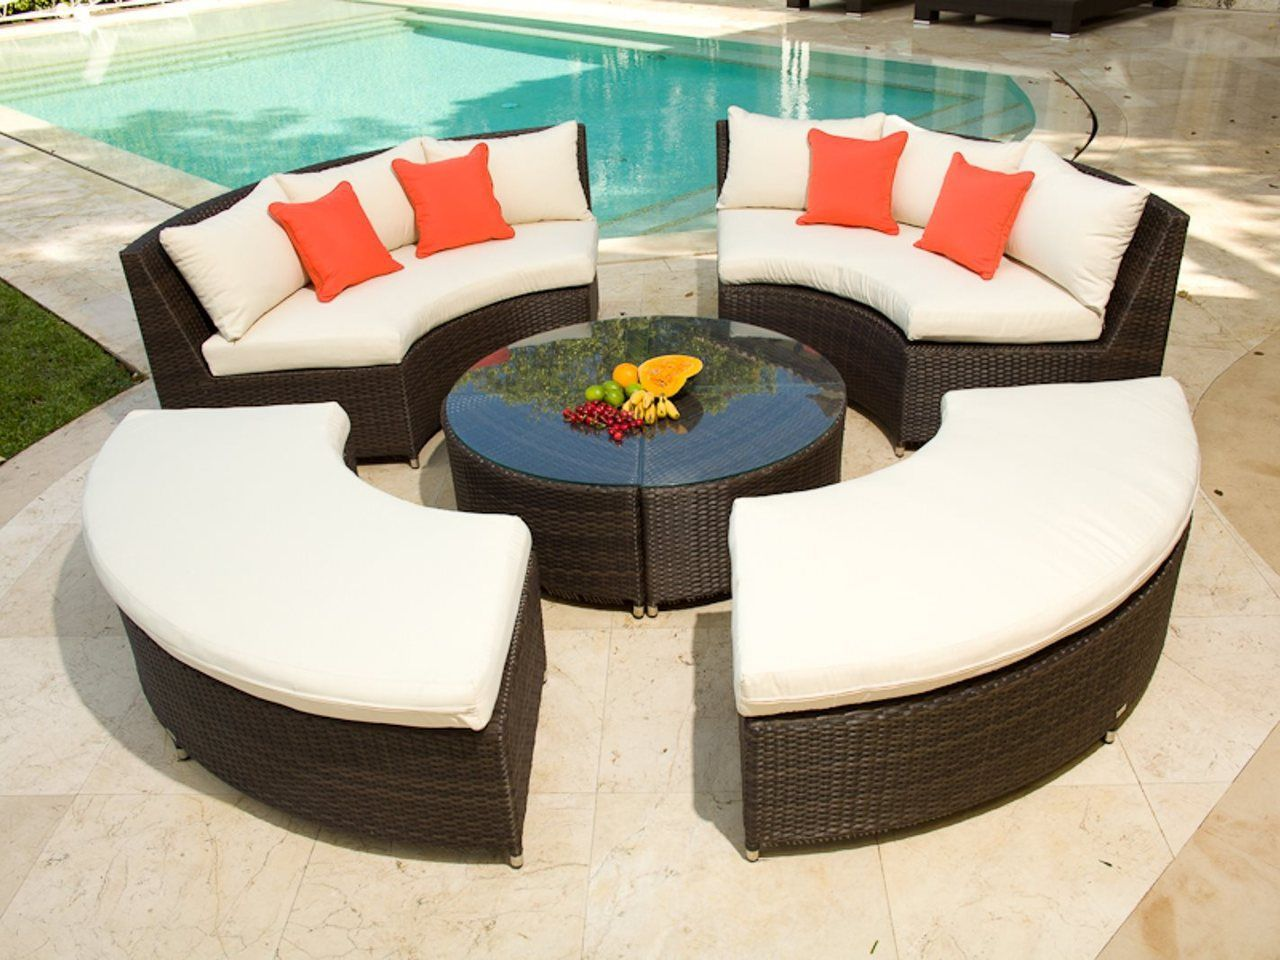 Modern Wicker   Source Outdoor Circa Round Wicker Sectional Seating Set,  $4,826.25 (http: